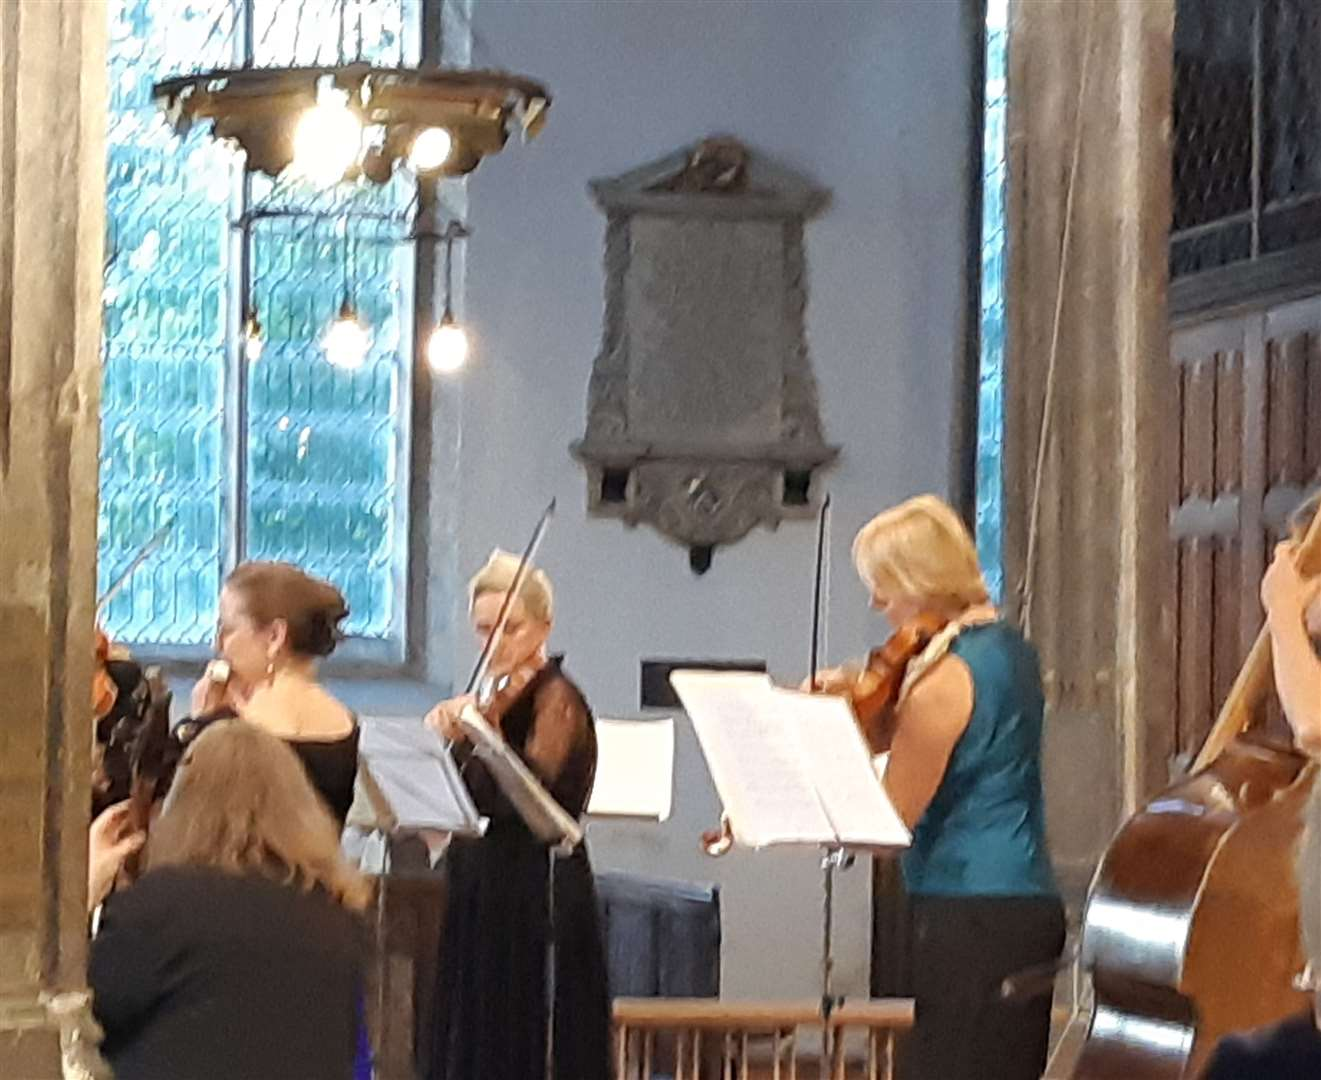 London Handel Players perform works by Telemann, Vivaldi, Bach and Herschel at St Nicholas Chapel during the 69th King's Lynn Festival. (14086280)